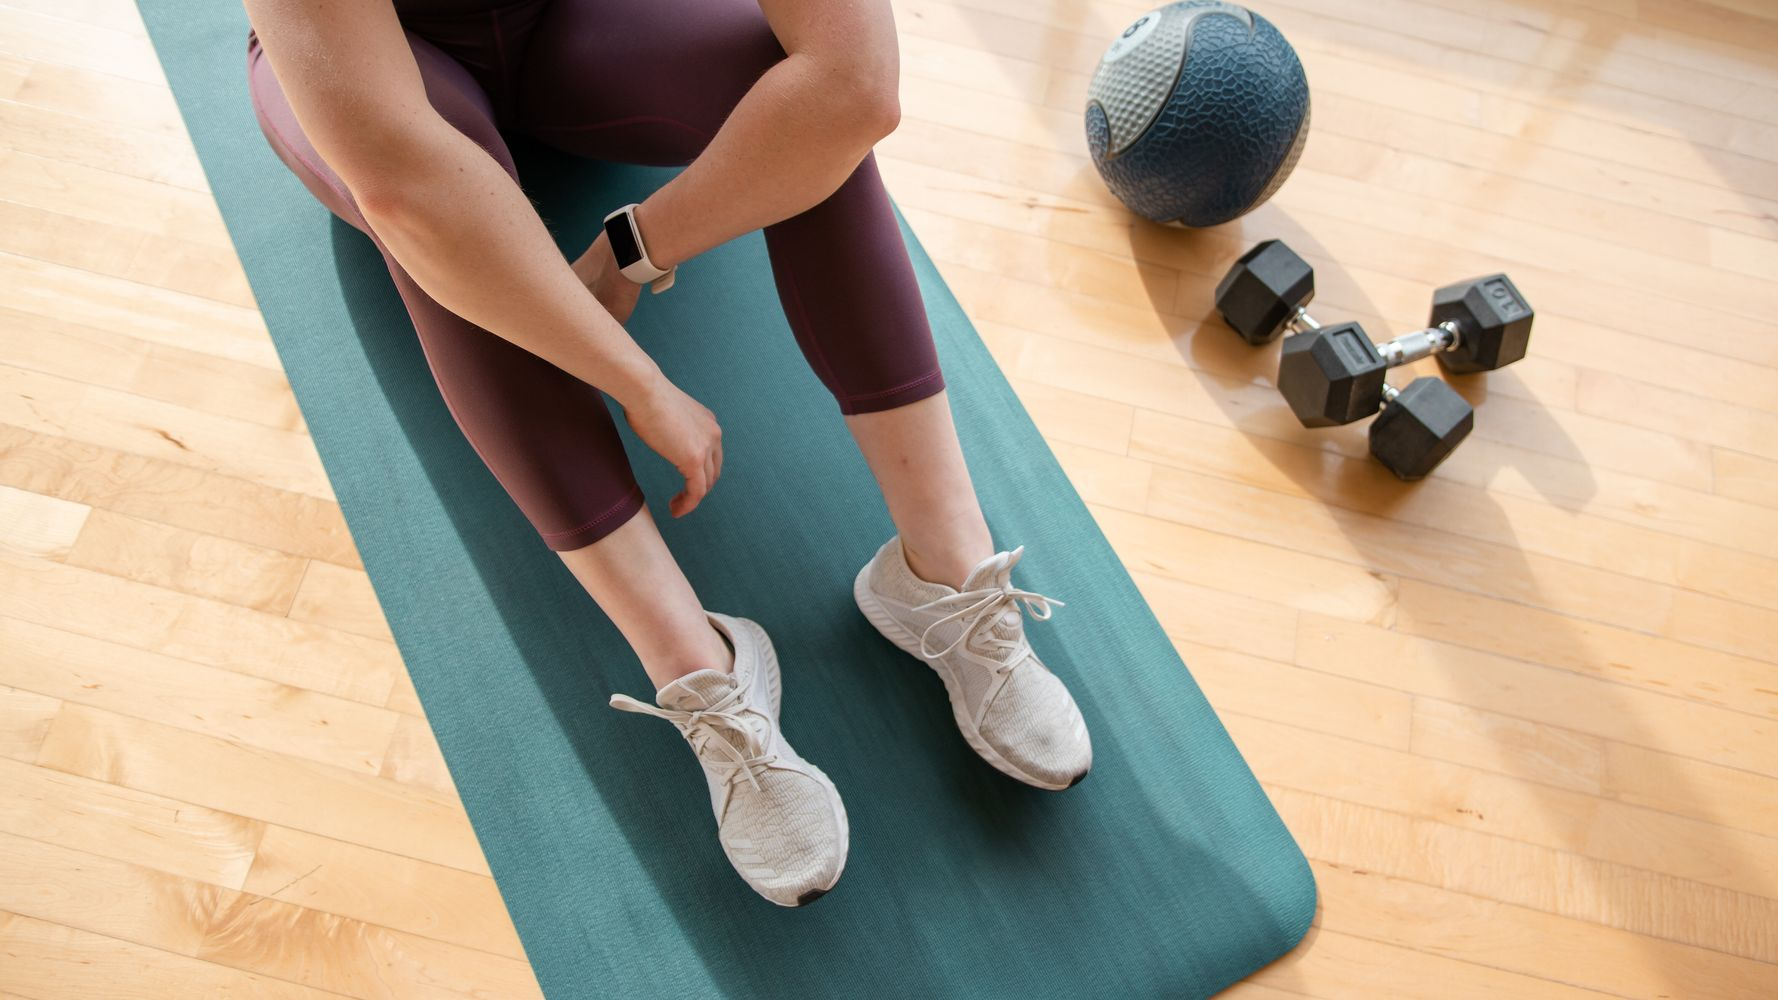 Black Friday 2020 Deals On Home Gym Equipment And Fitness Gear